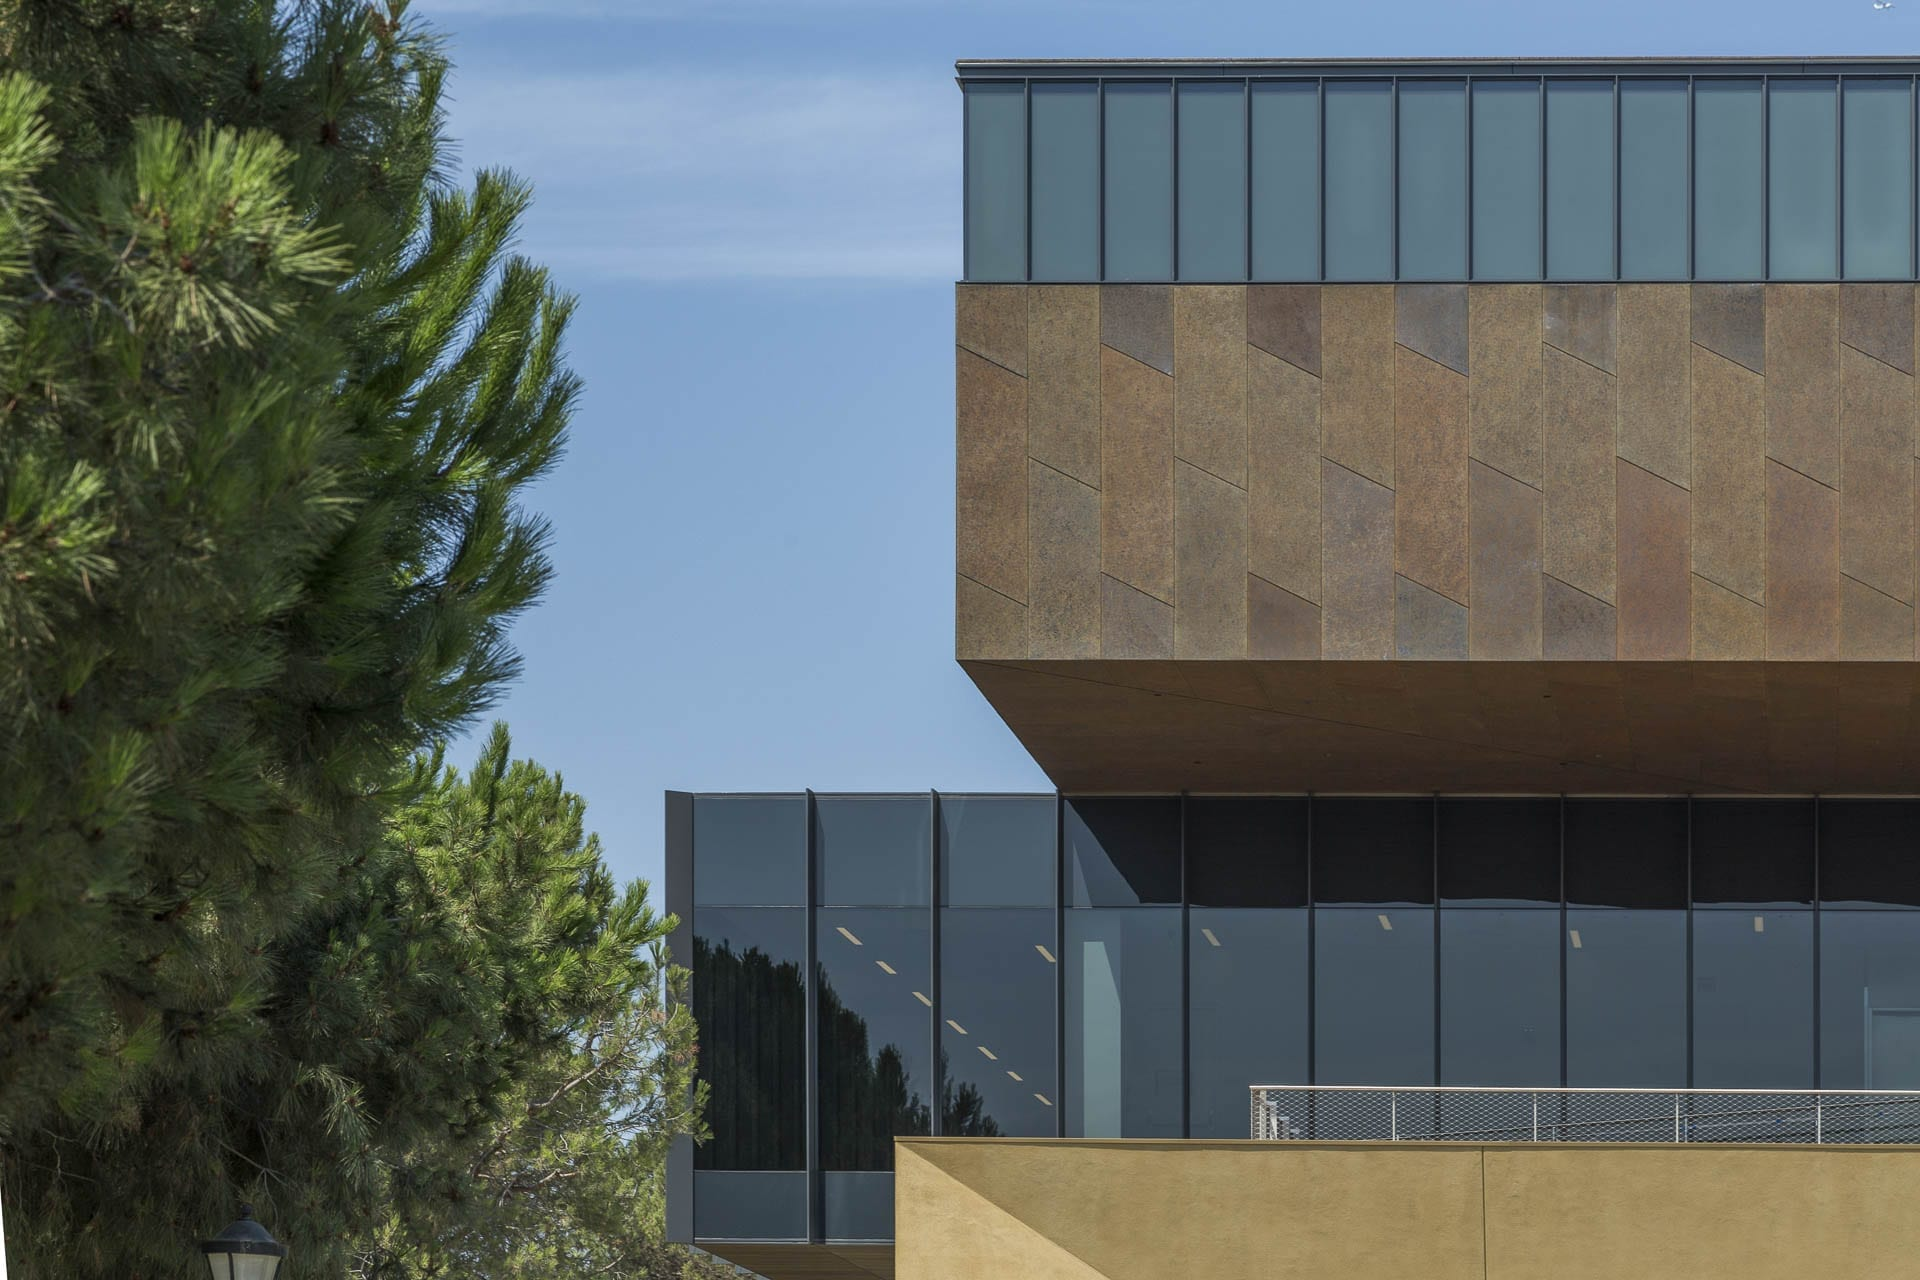 Detail of the cantilevered facade with custom-patinated zinc metalwork, on the McMurtry Building in Stanford, California.